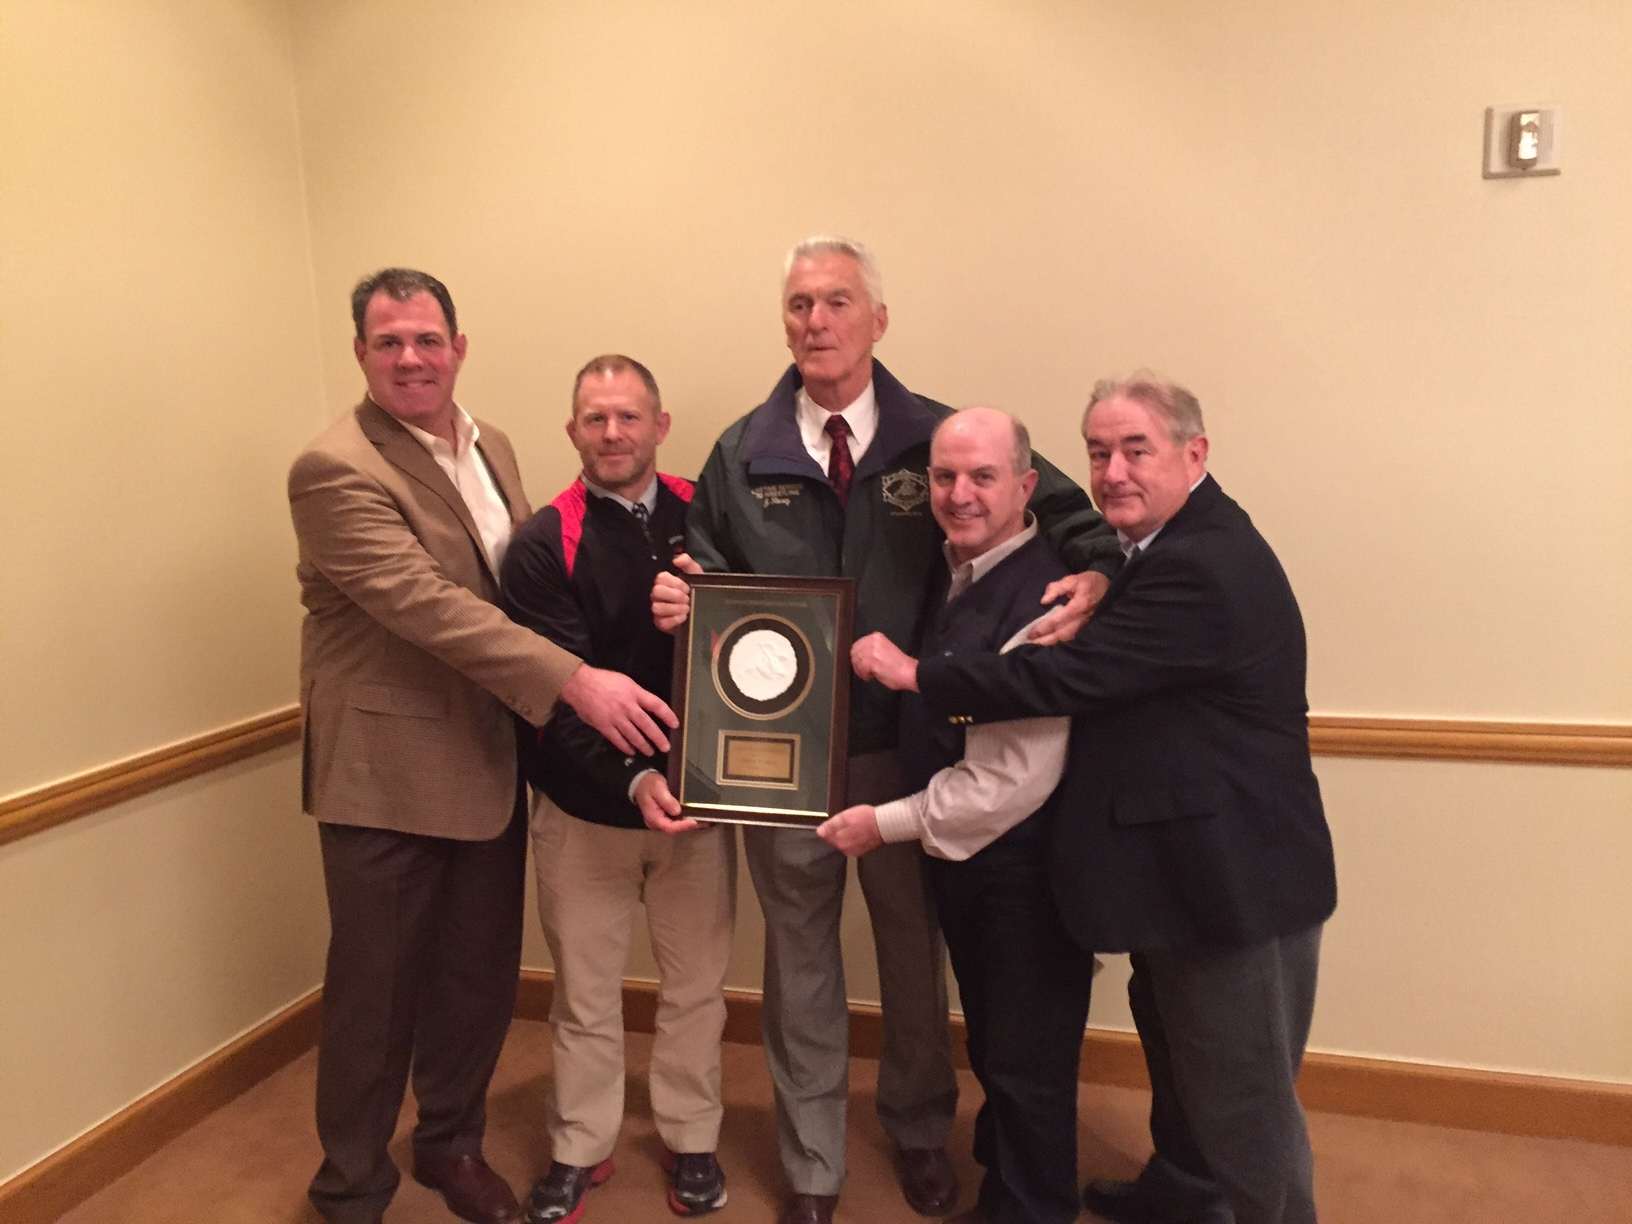 John Storey '59 inducted into National Wrestling Hall of Fame